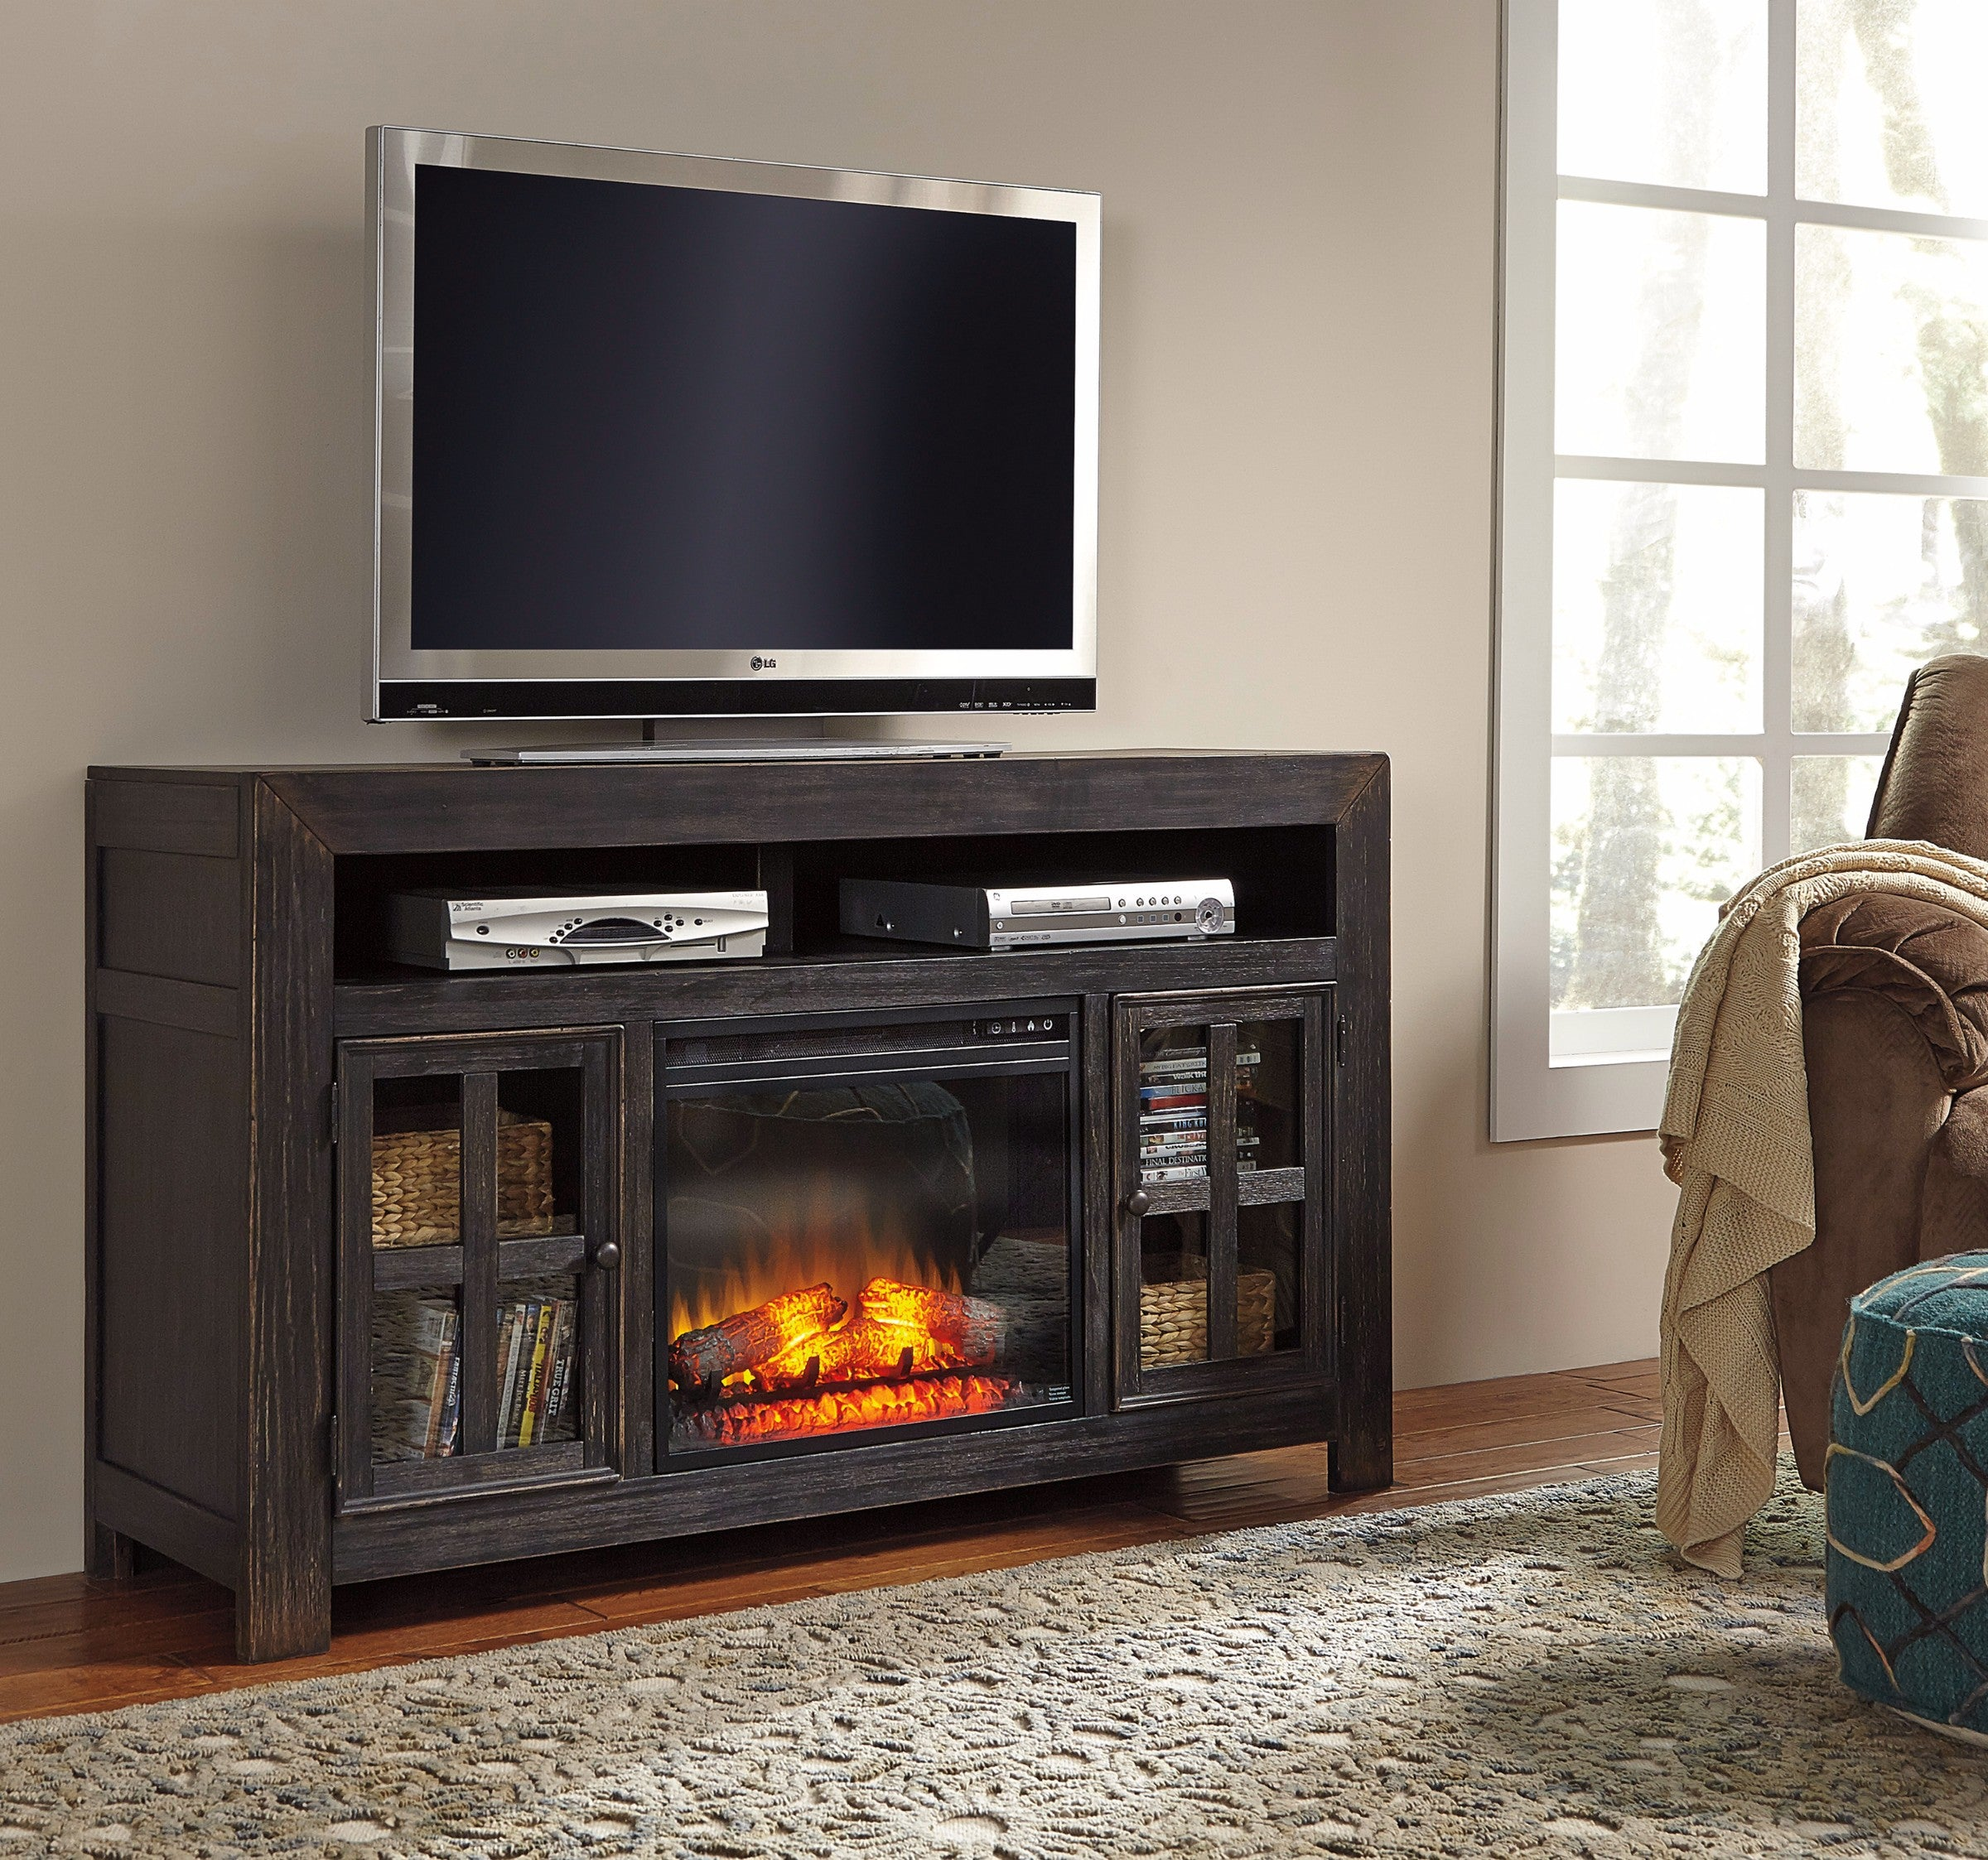 Gravolston Casual Black Wood TV Stand with Fireplace Insert